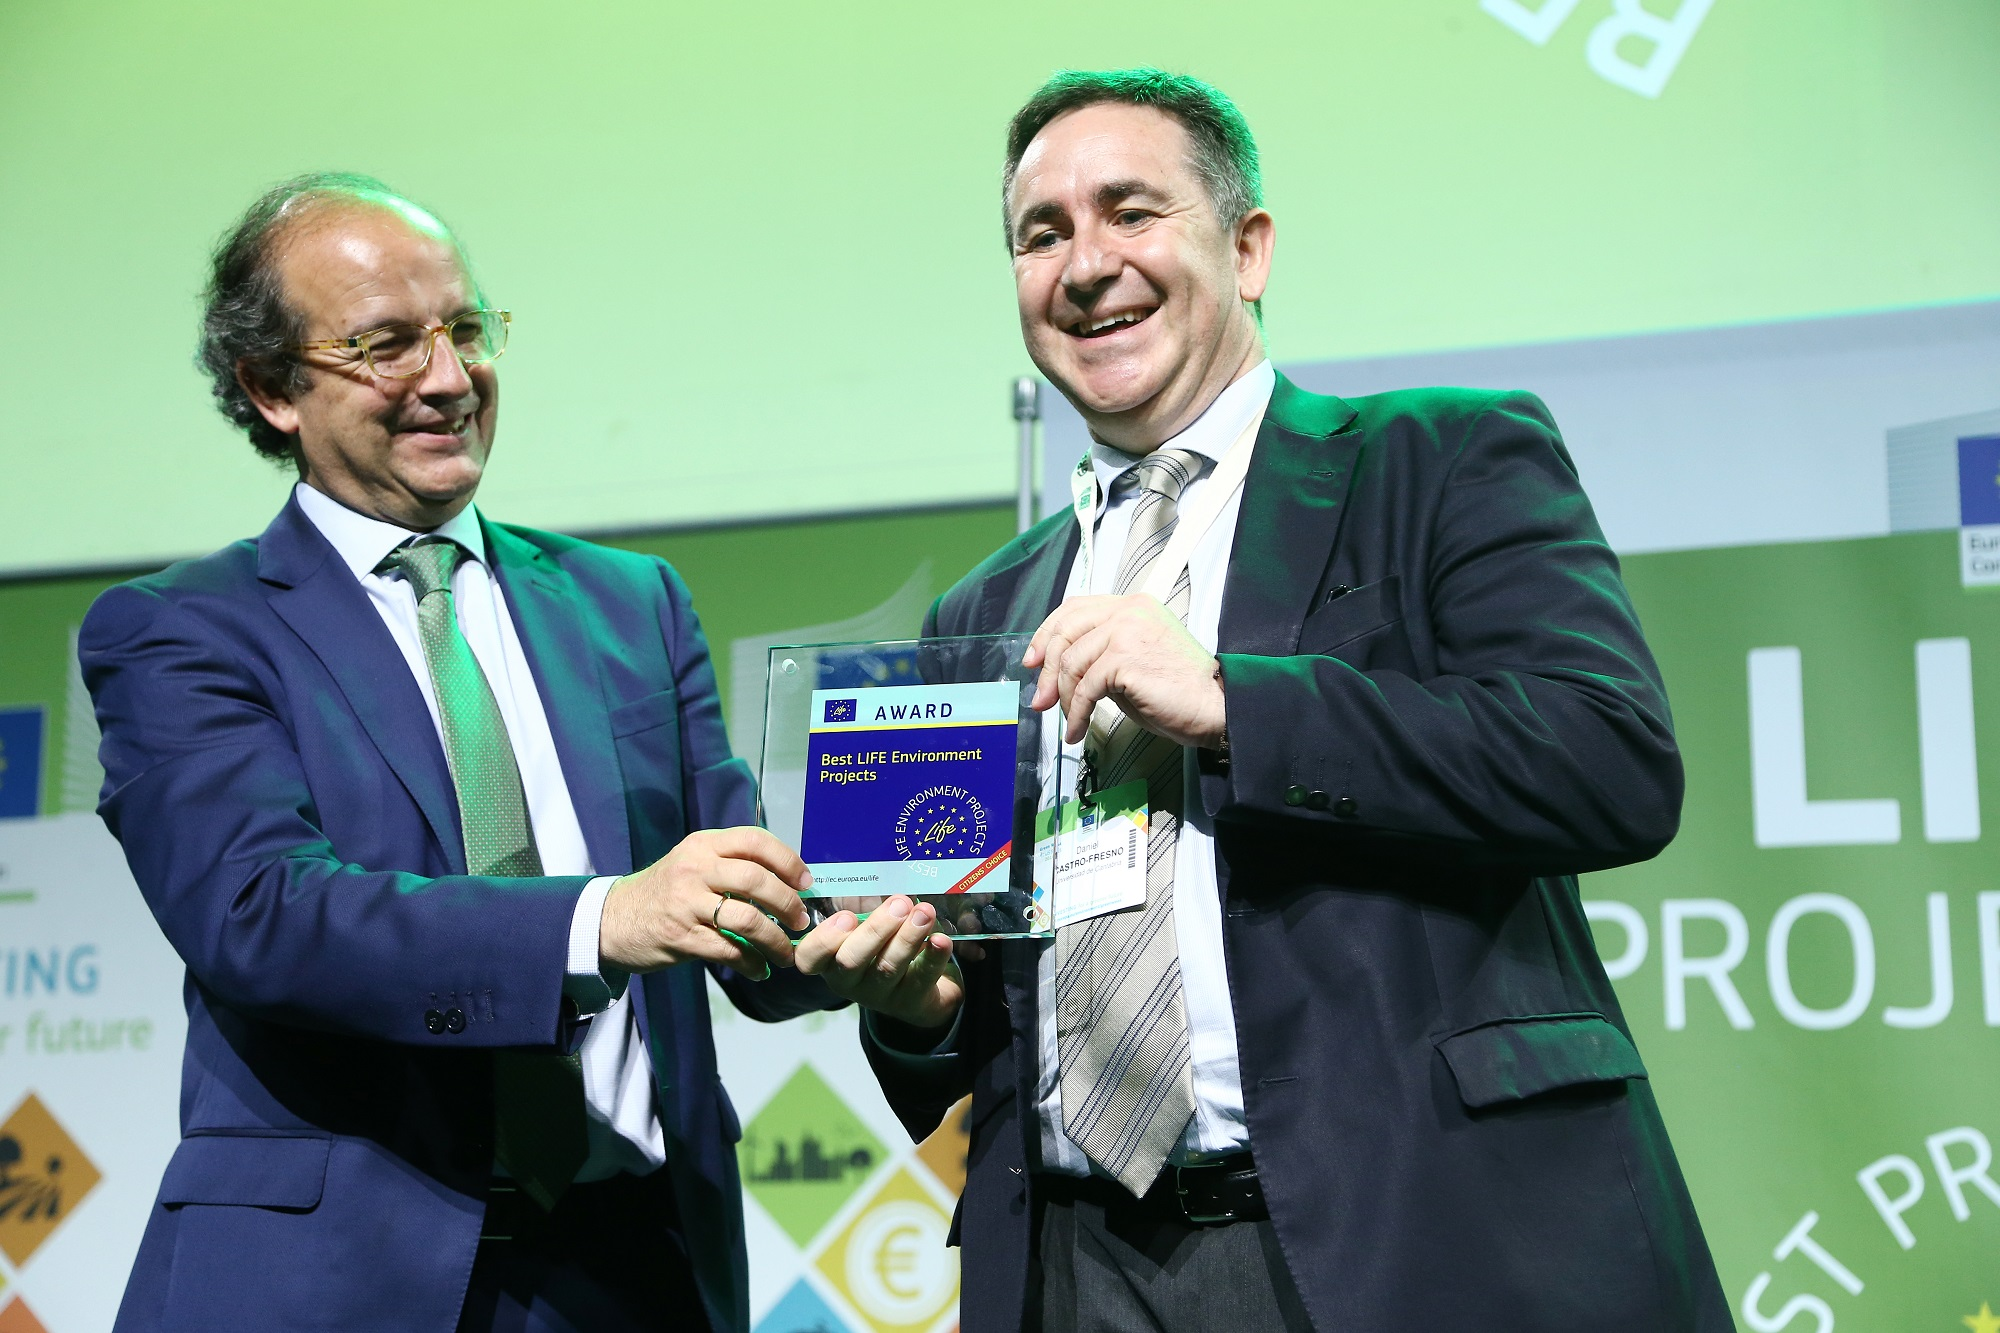 160531 - Belgium - Brussels - 2016 May 31st  - Green Week 2016 - Best Life Environment Project Awards 2016 - © European Commission